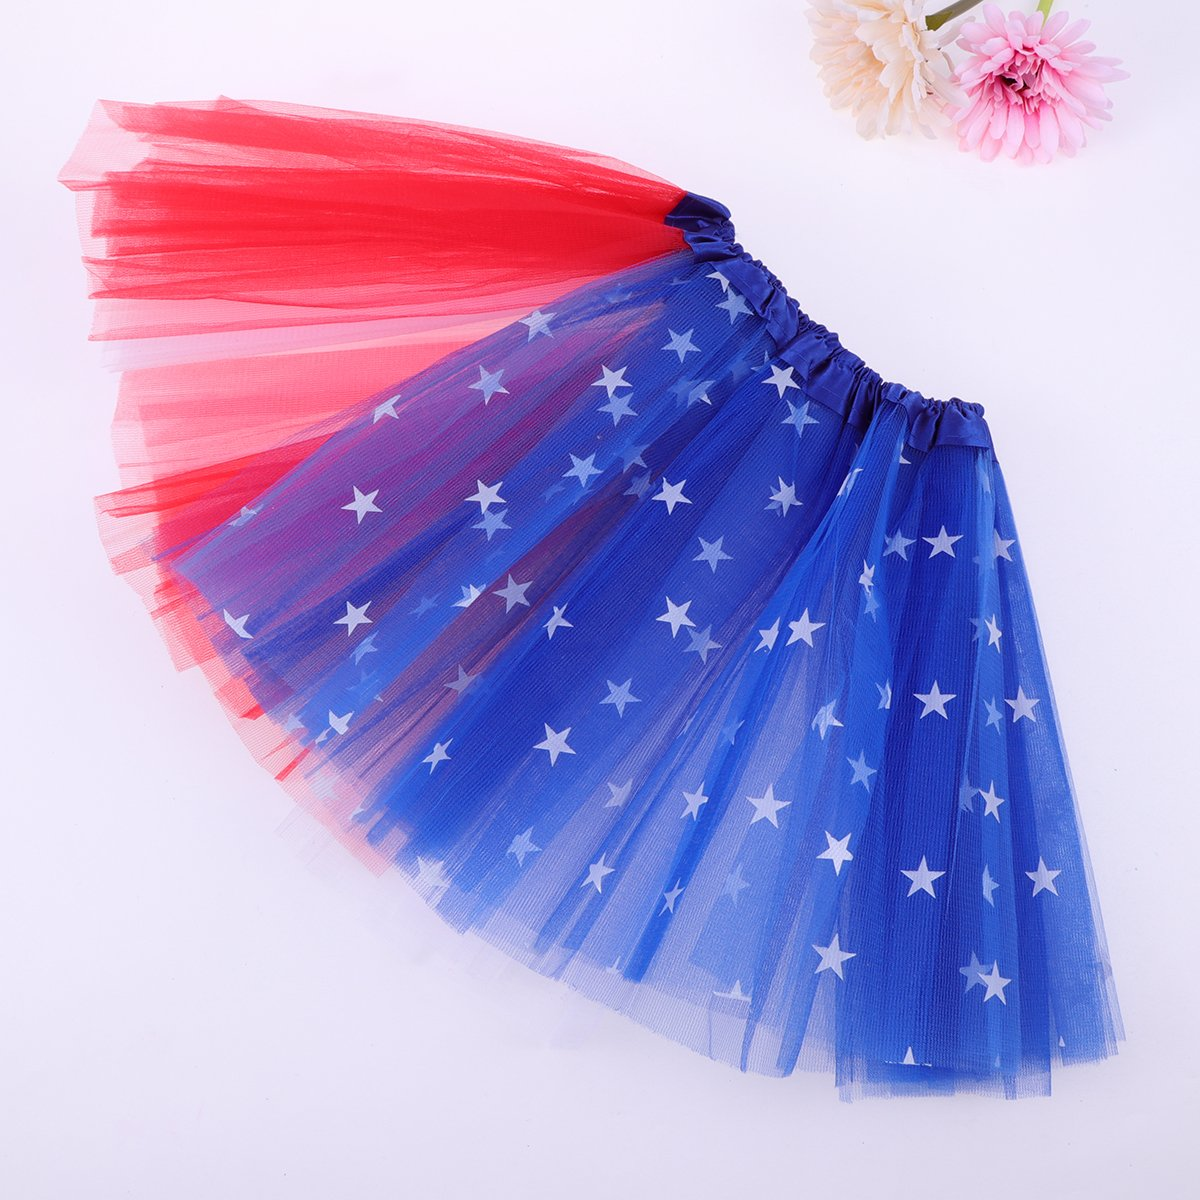 Tinksky Girls Tutu Skirt Fairy Princess Costume American Flag Tutu for Fourth of July Independence Day